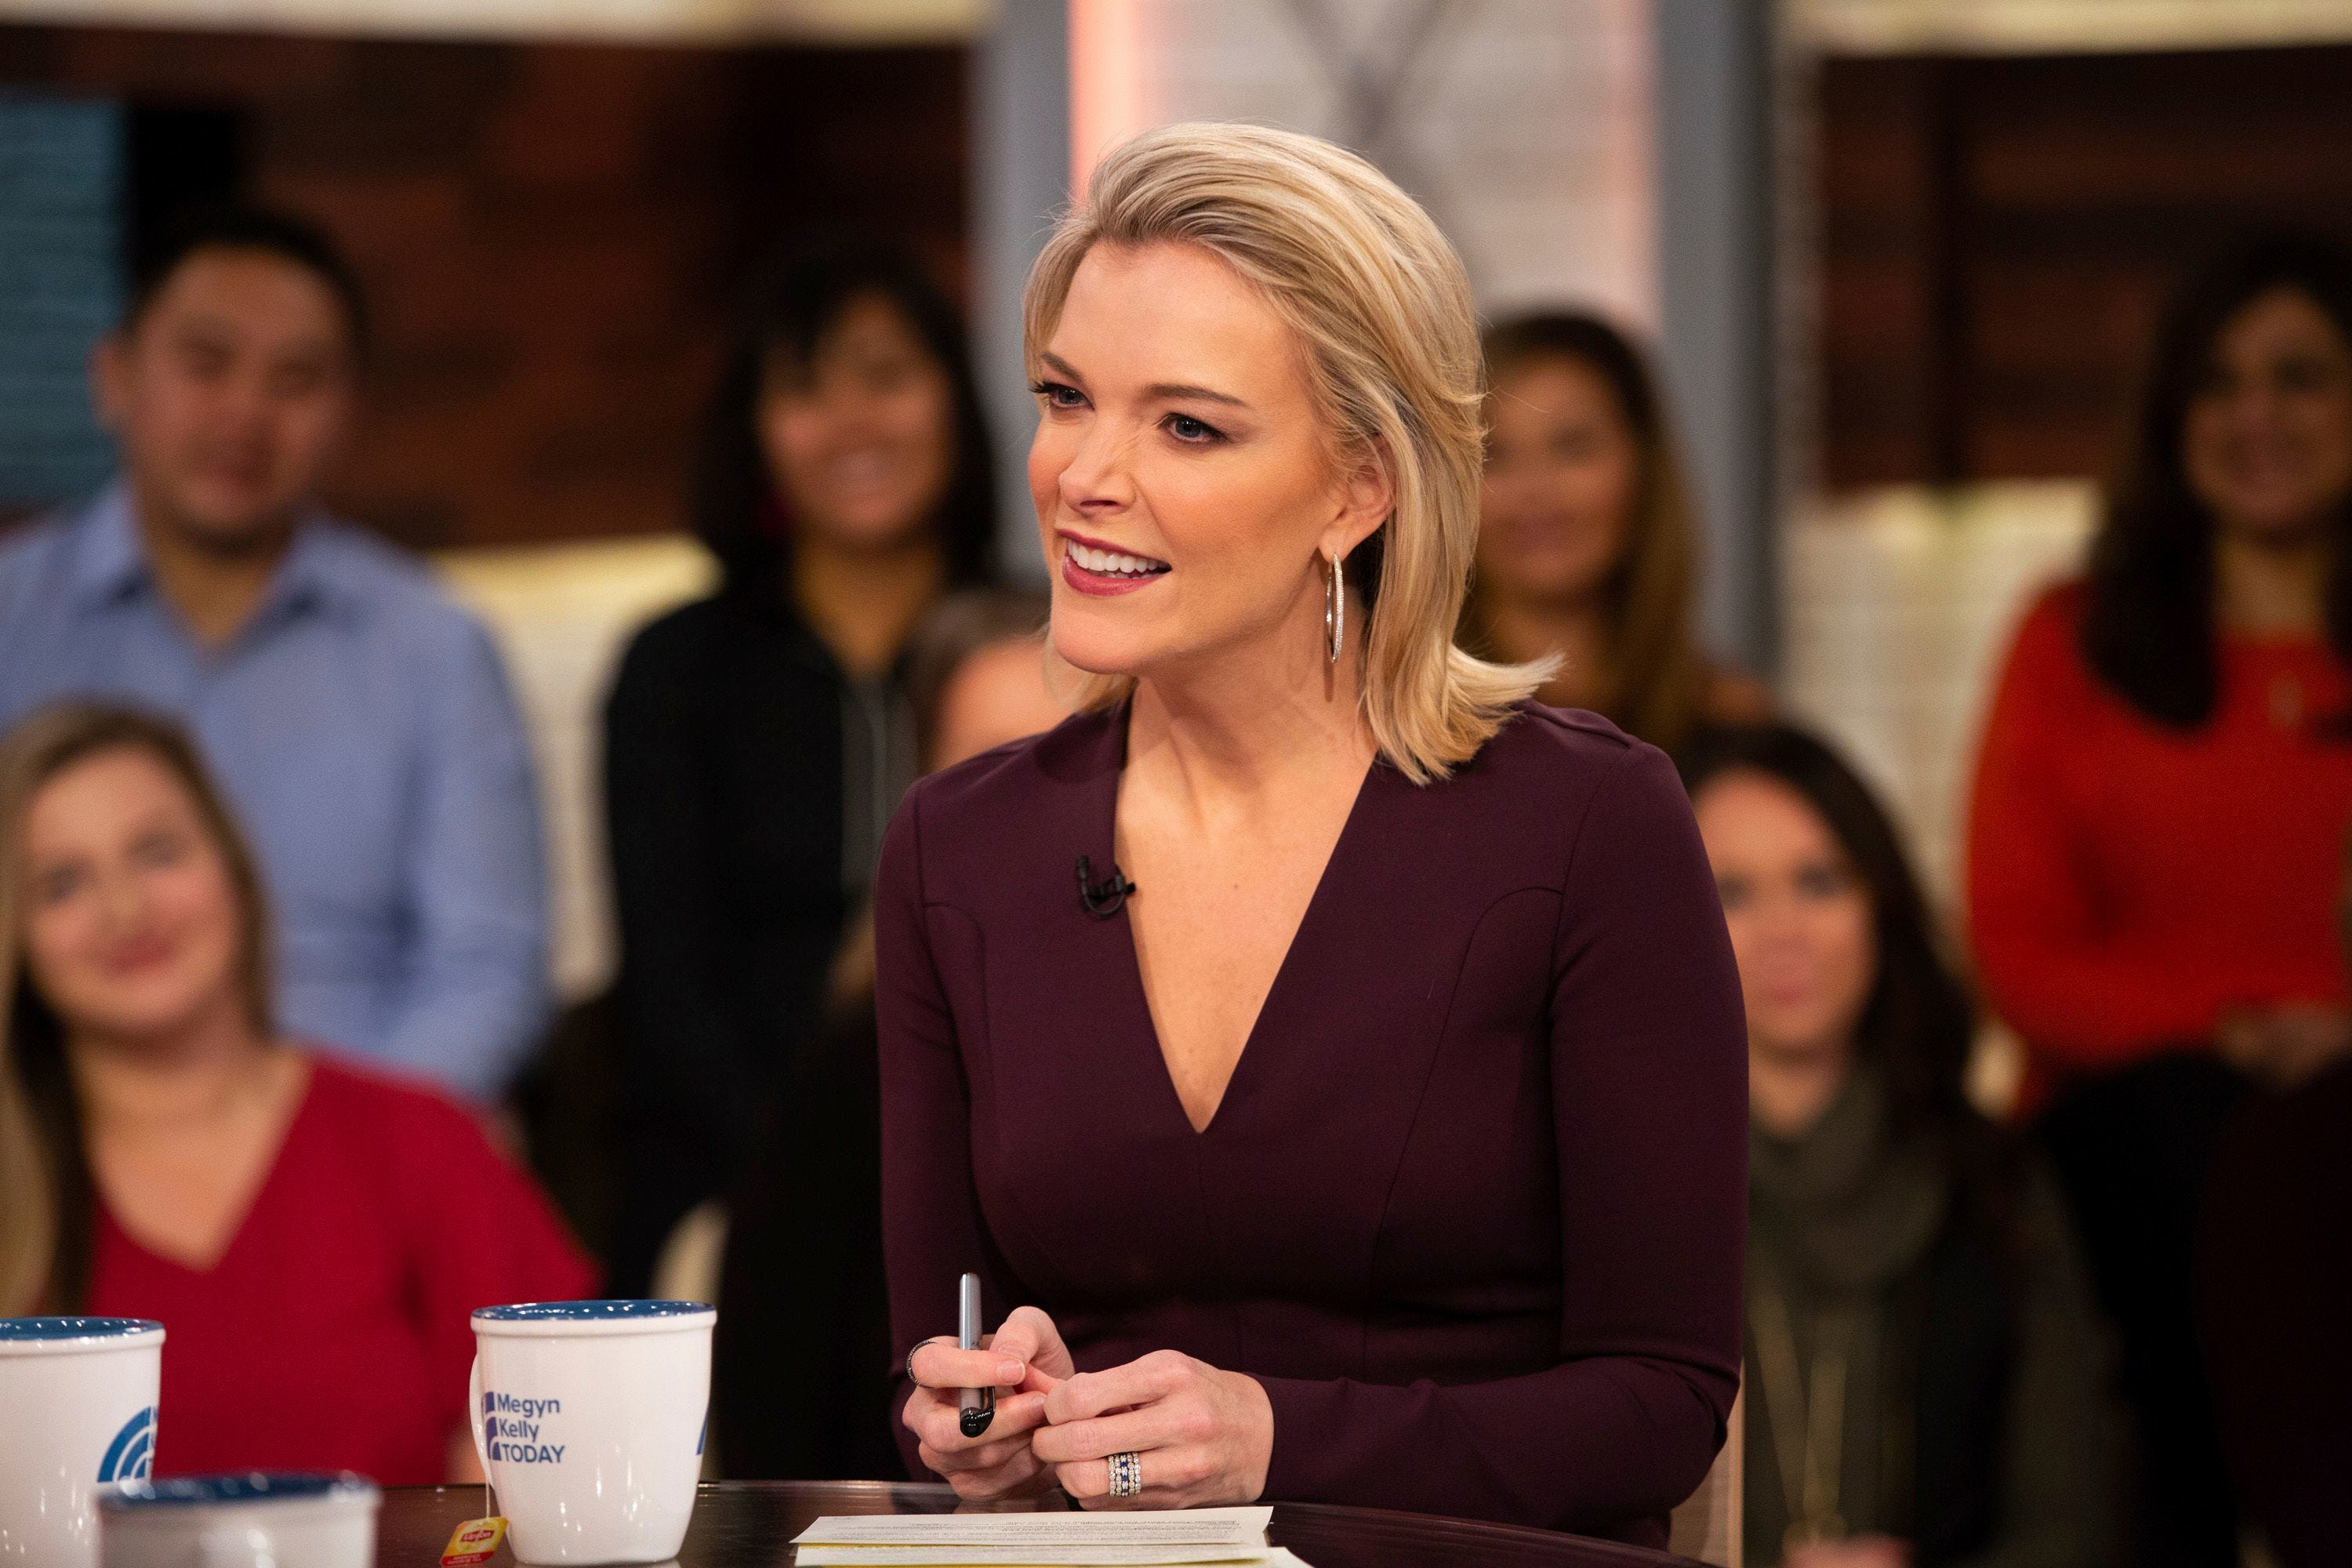 Megyn Kelly gives first interview since 'Today' exit; recalls father's sudden 1985 death